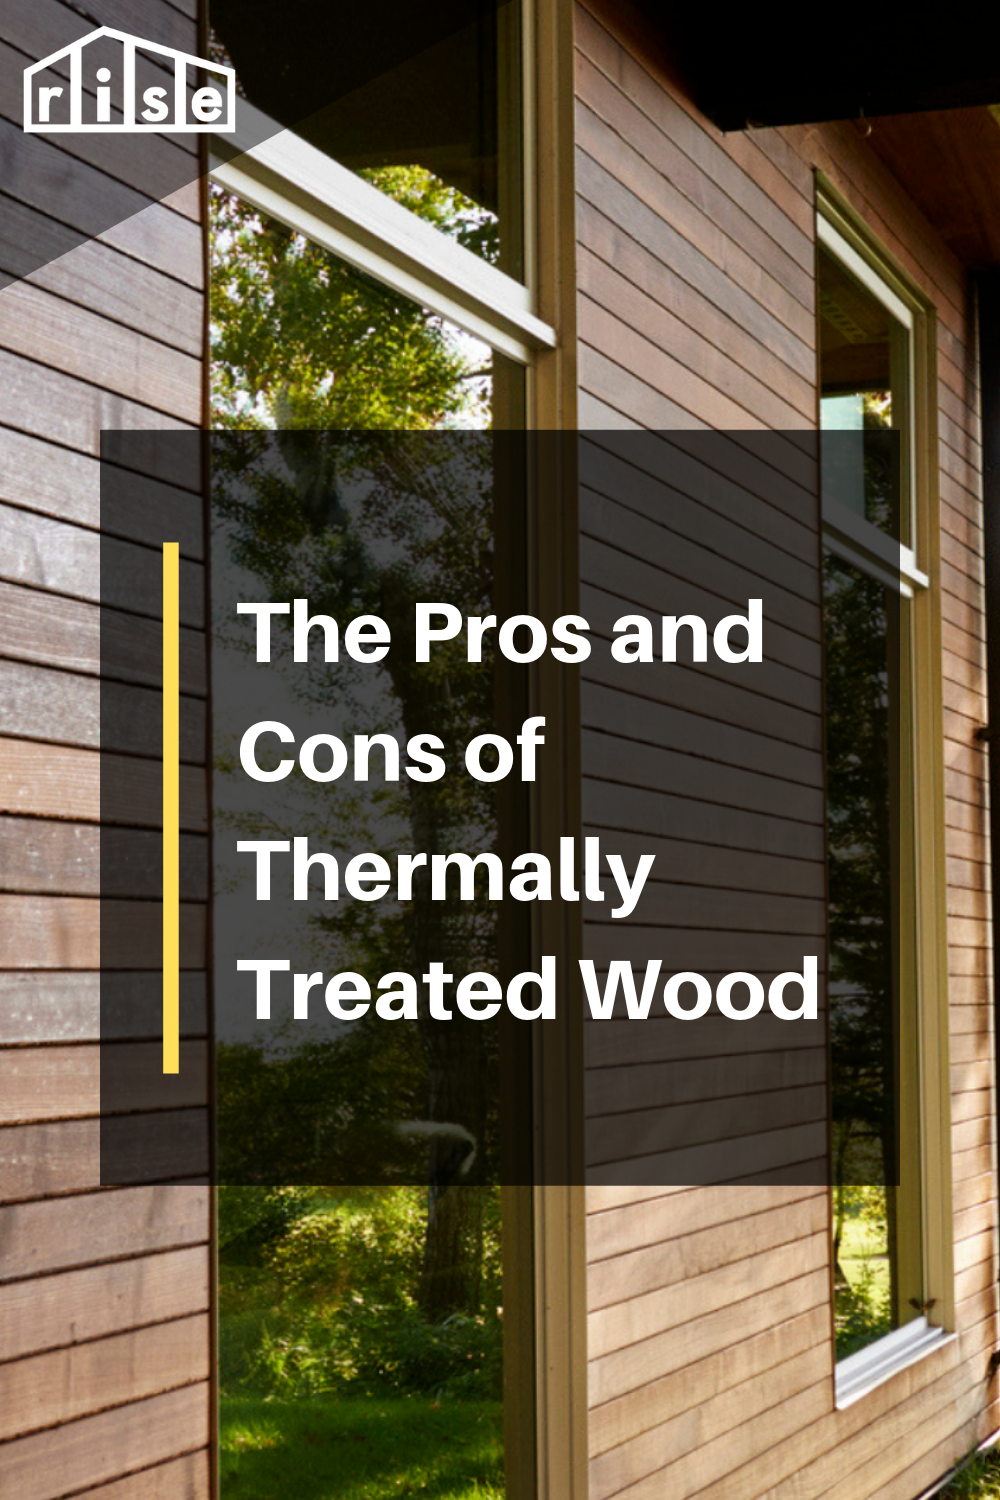 Thermally Treated Wood A Healthier Alternative For Home Building Concrete Cladding External Cladding Larch Cladding